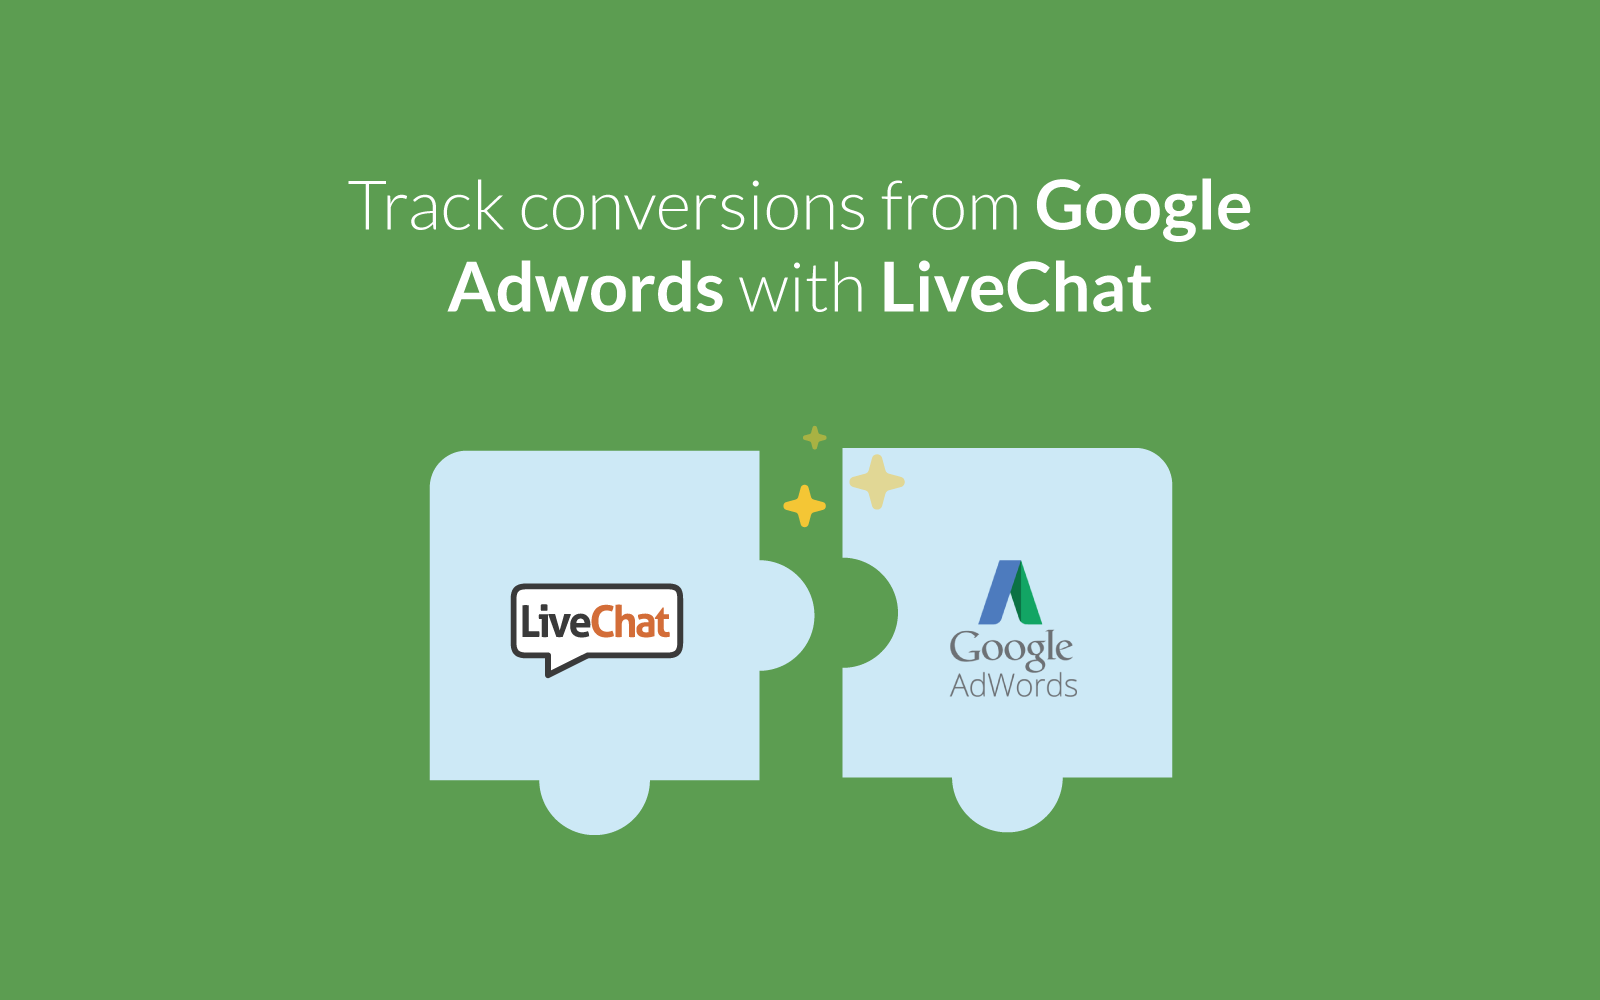 Google Adwords with LiveChat